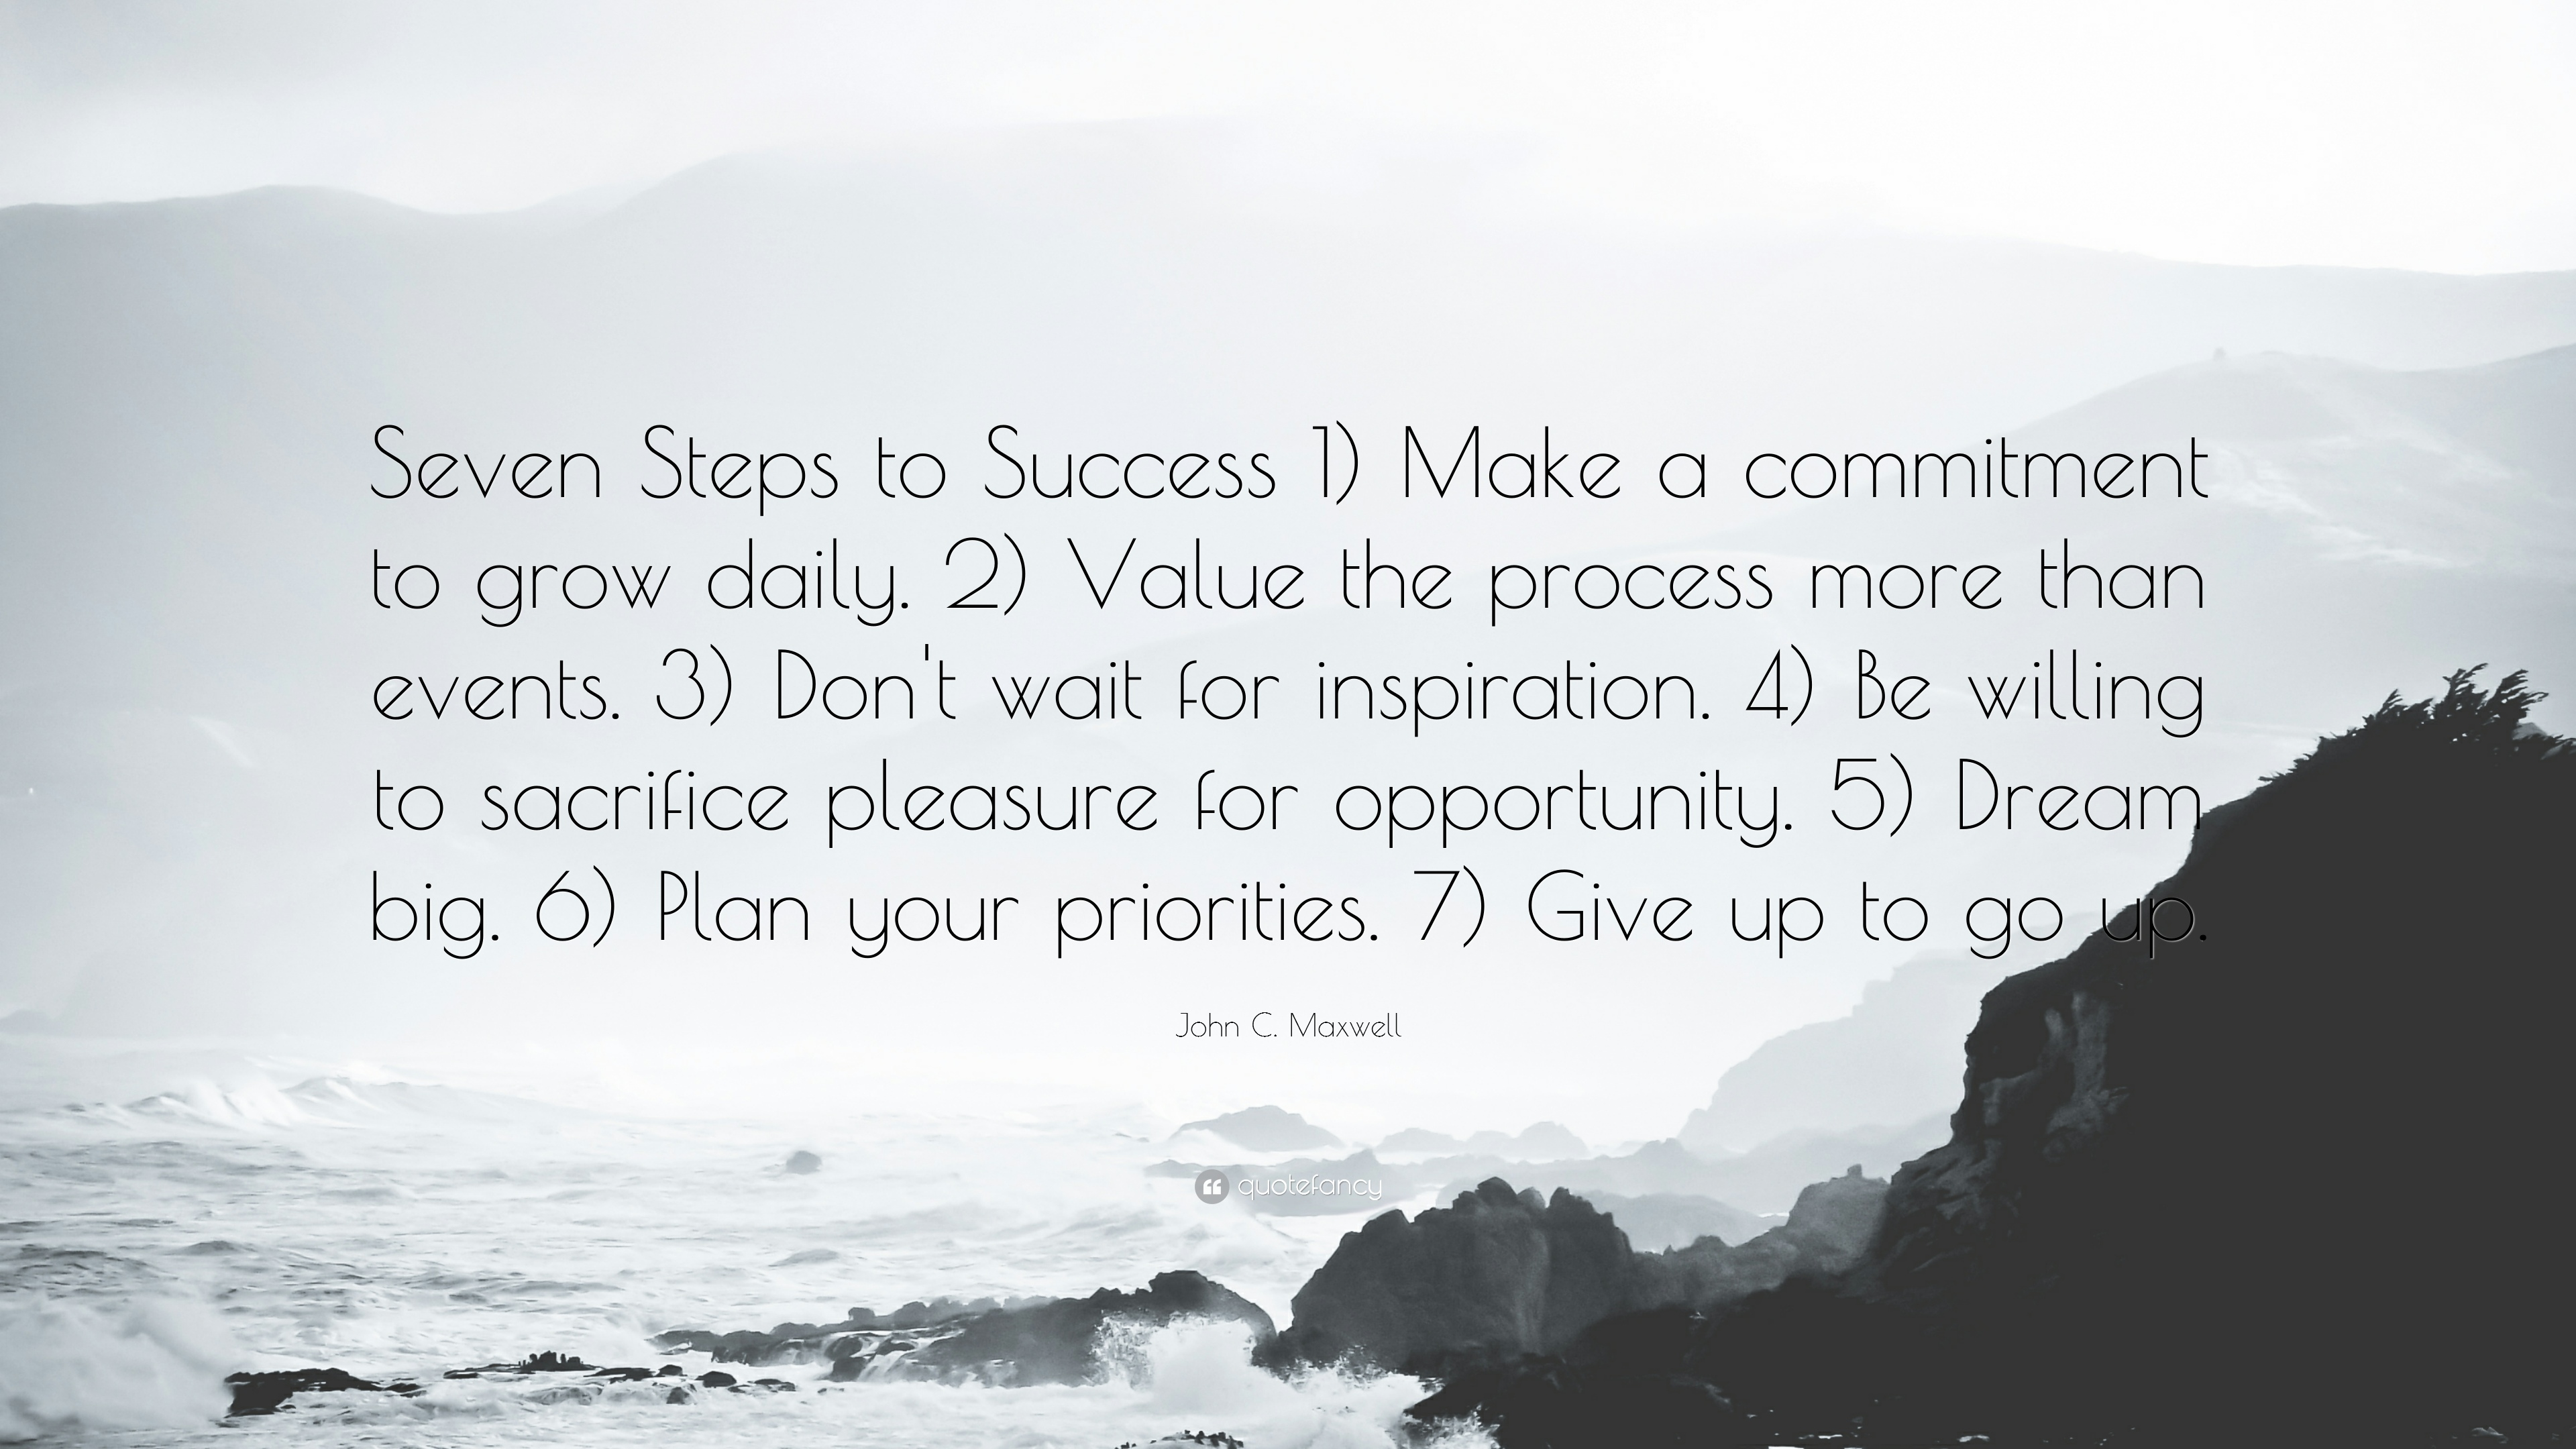 Motivational quotes dream quotes dream big quotes action quotes - Success Quotes Seven Steps To Success 1 Make A Commitment To Grow Daily